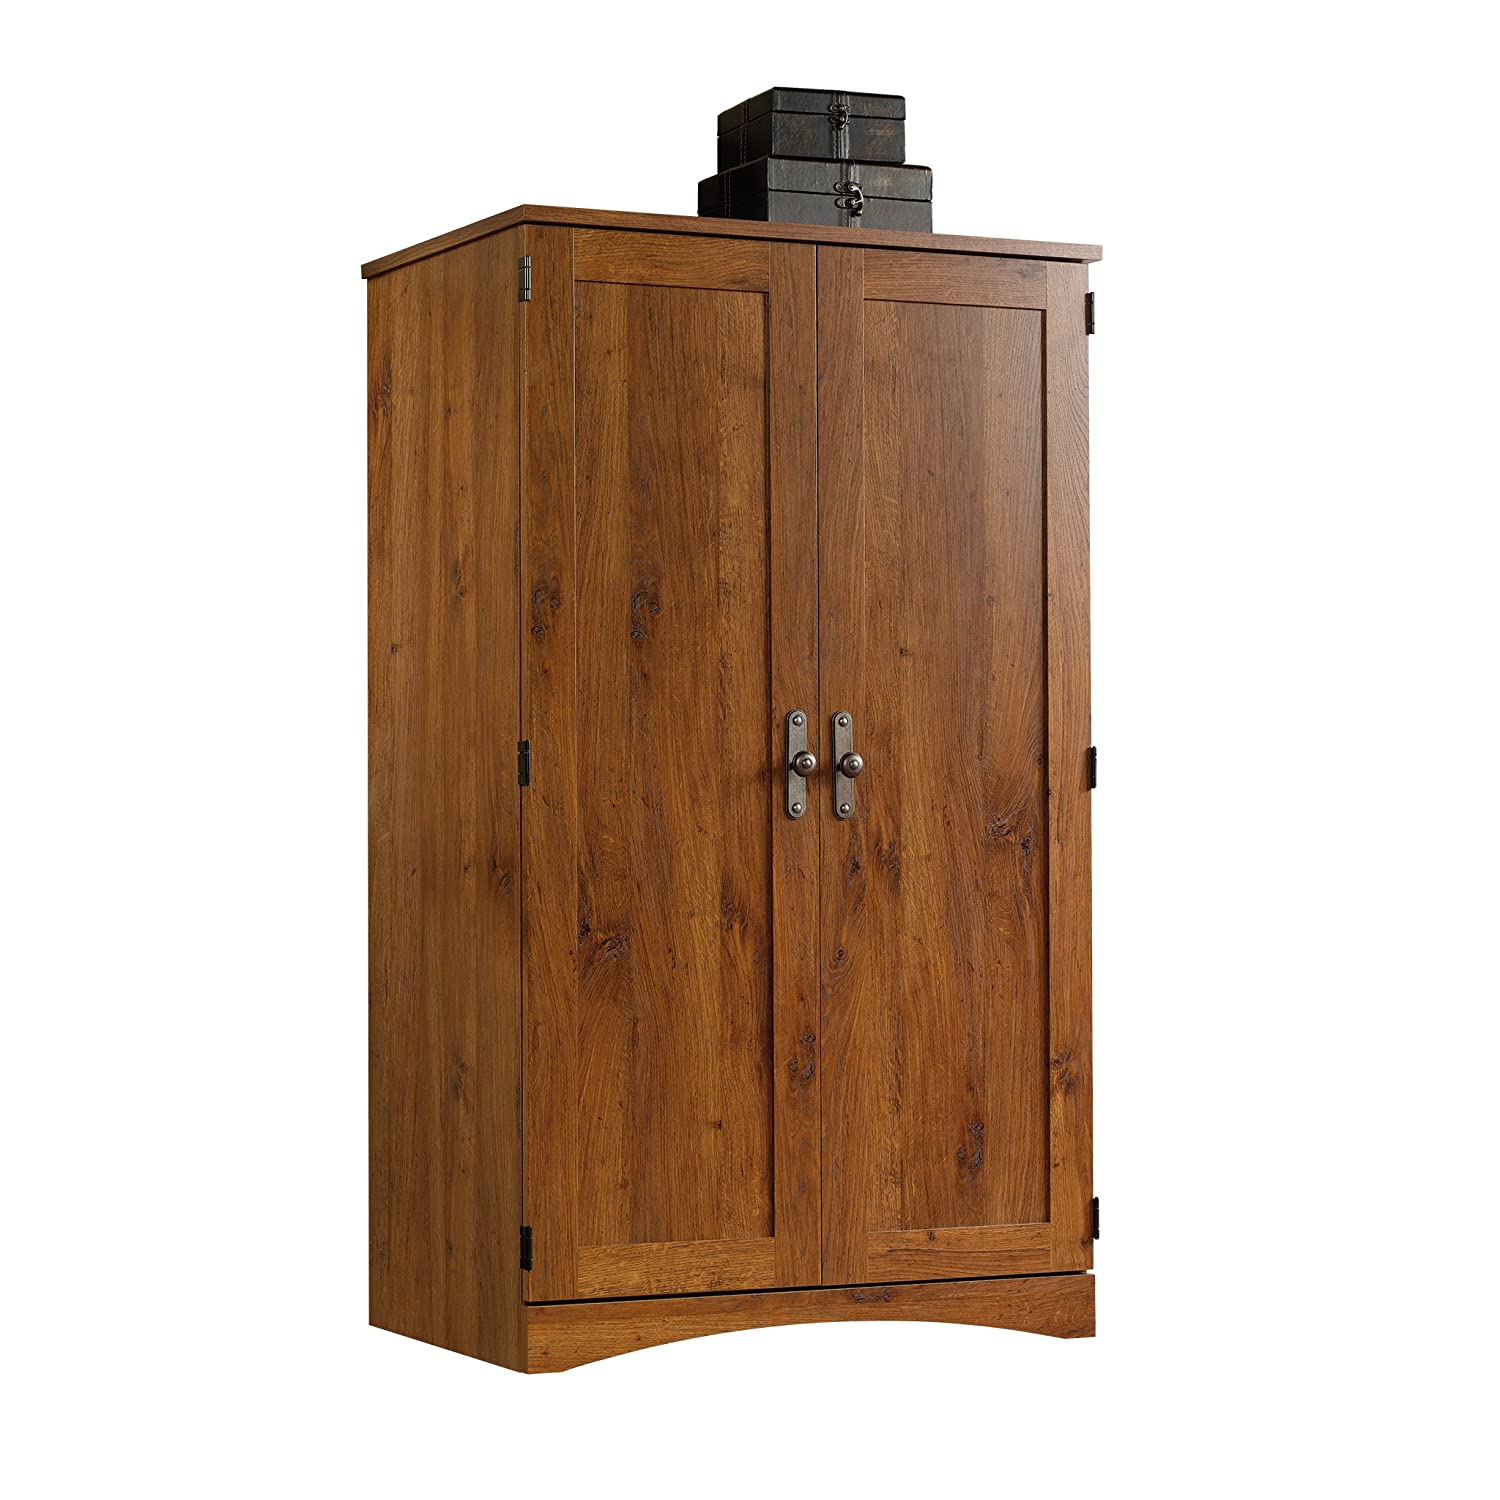 Sauder Harvest Mill Computer Armoire, Abbey Oak Finish 404958